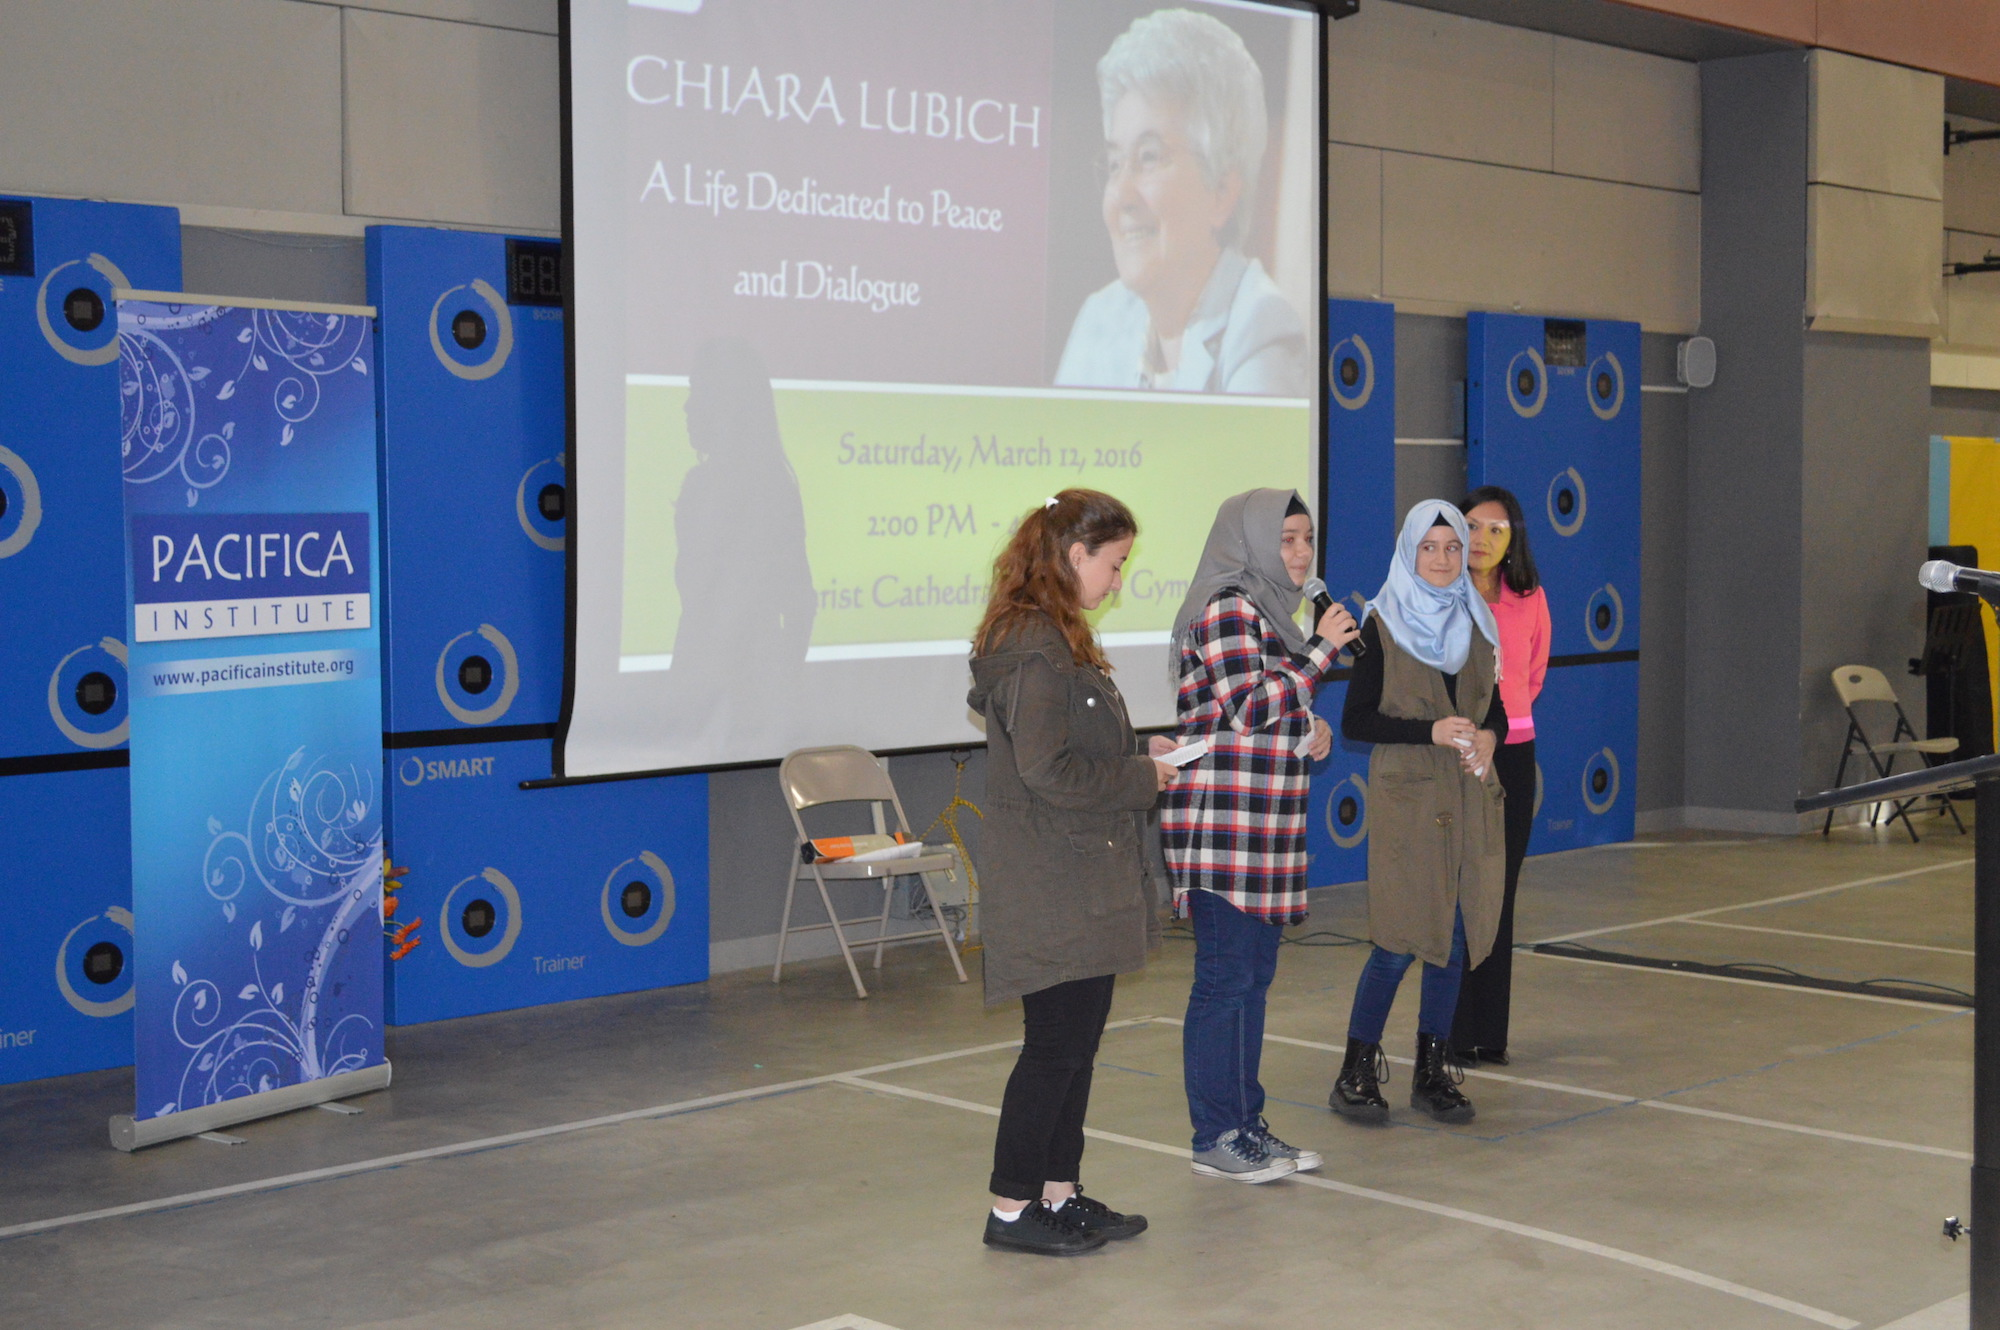 Pacifica Youth Joined the Focolare Community Event and Made a Presentation About the Institute